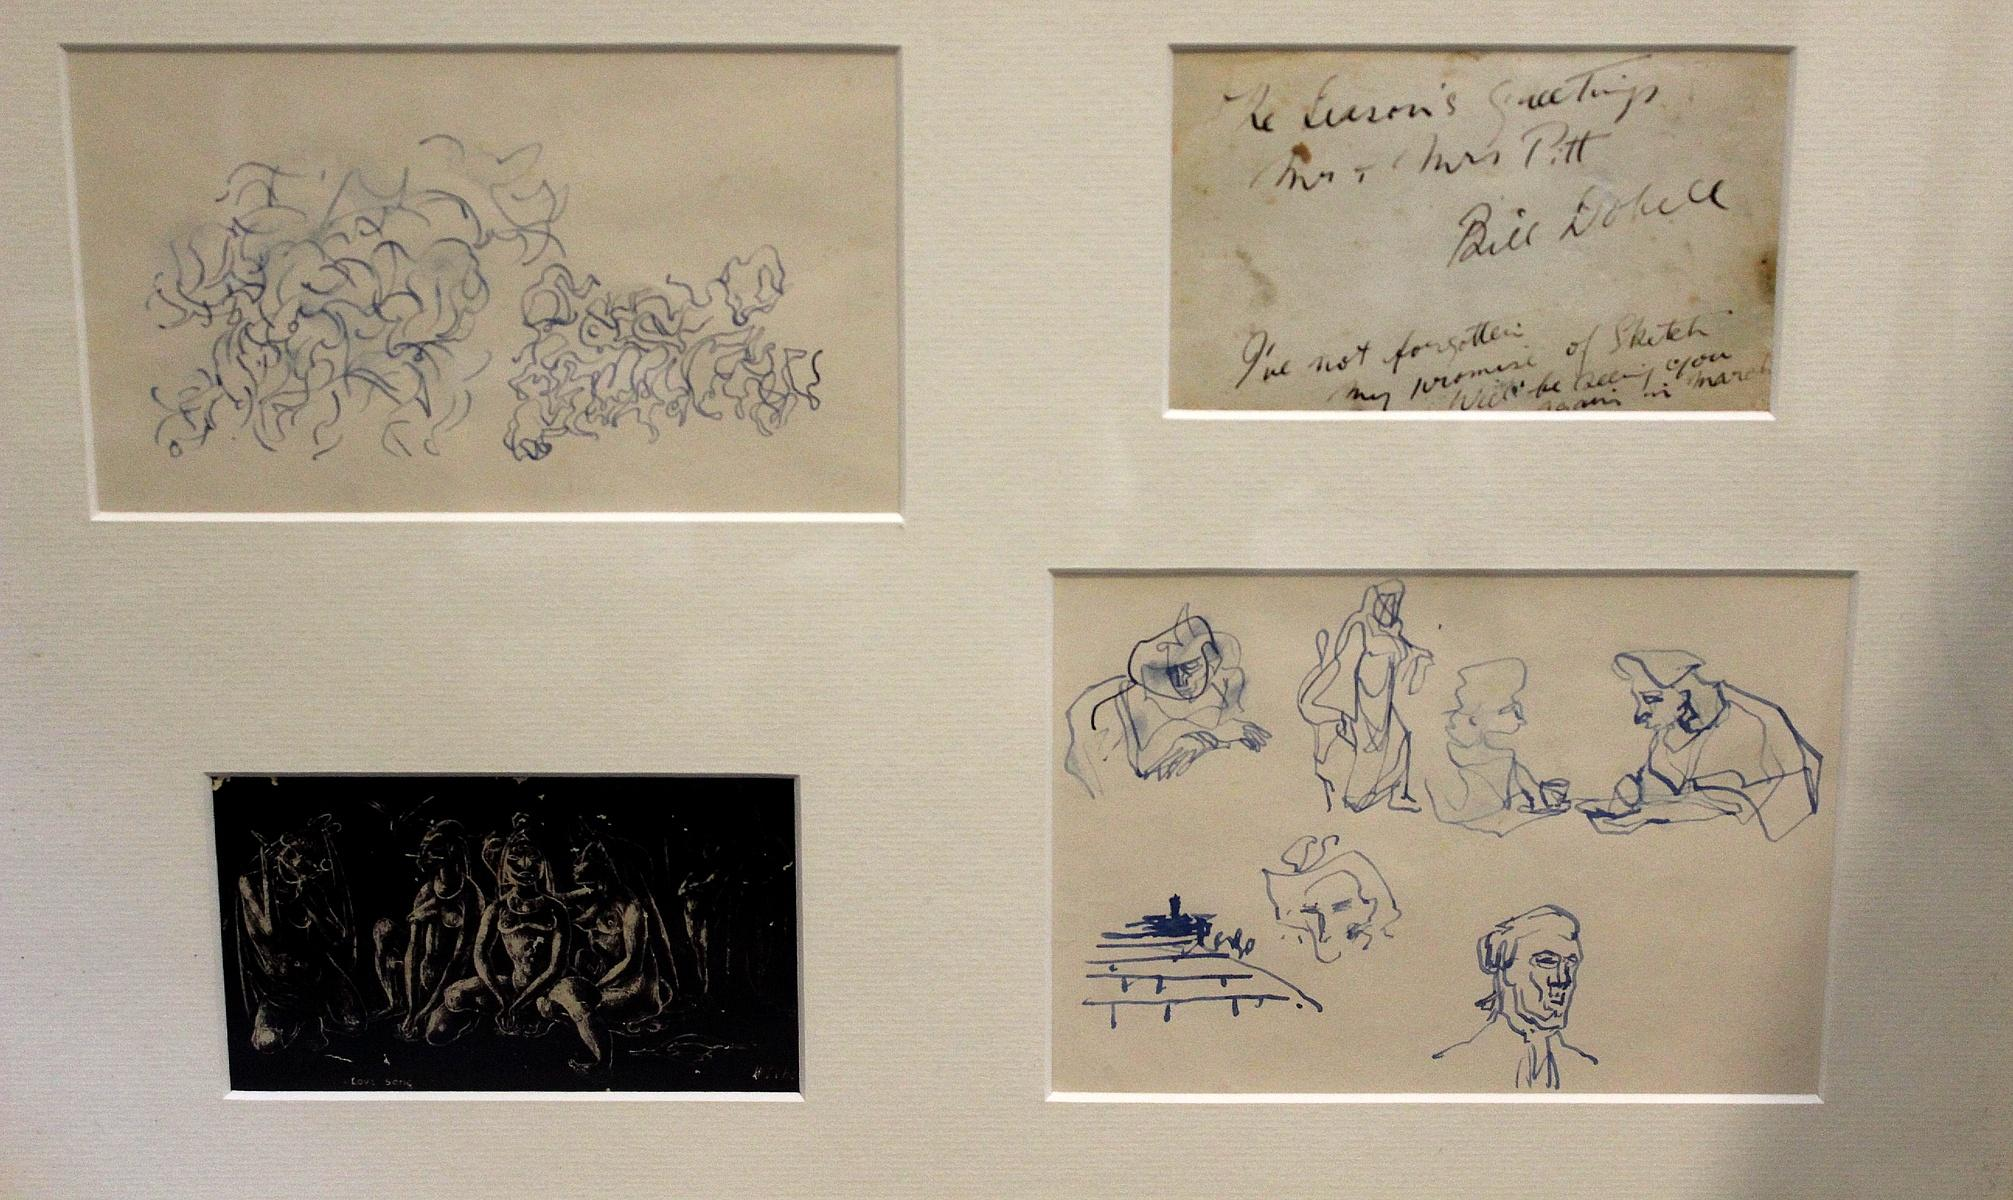 William Dobell (Australian, 1890-1970). Pen on Paper Compositional Sketch along with a number of Head & Figures studies.